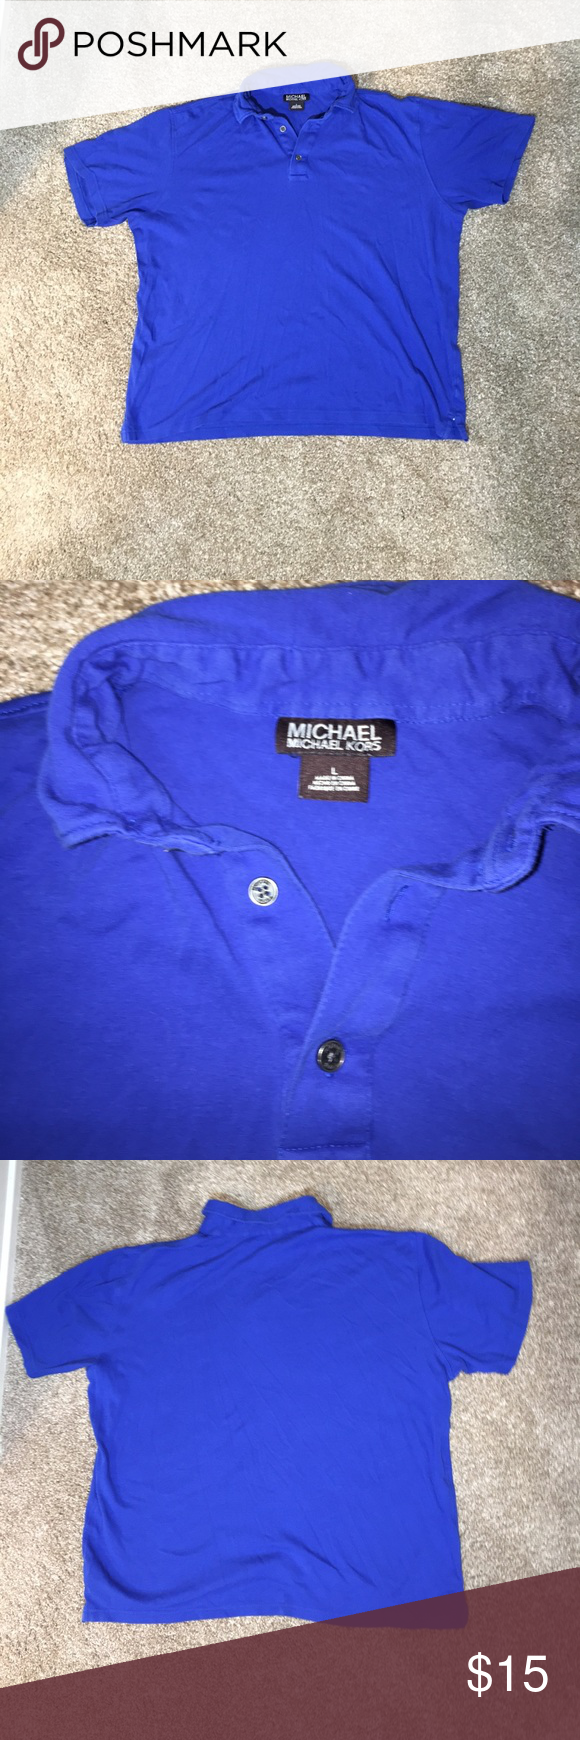 MICHAEL Michael Kors Blue Polo MICHAEL Michael Kors blue polo size L. Condition 8/10. MICHAEL Michael Kors Shirts Polos